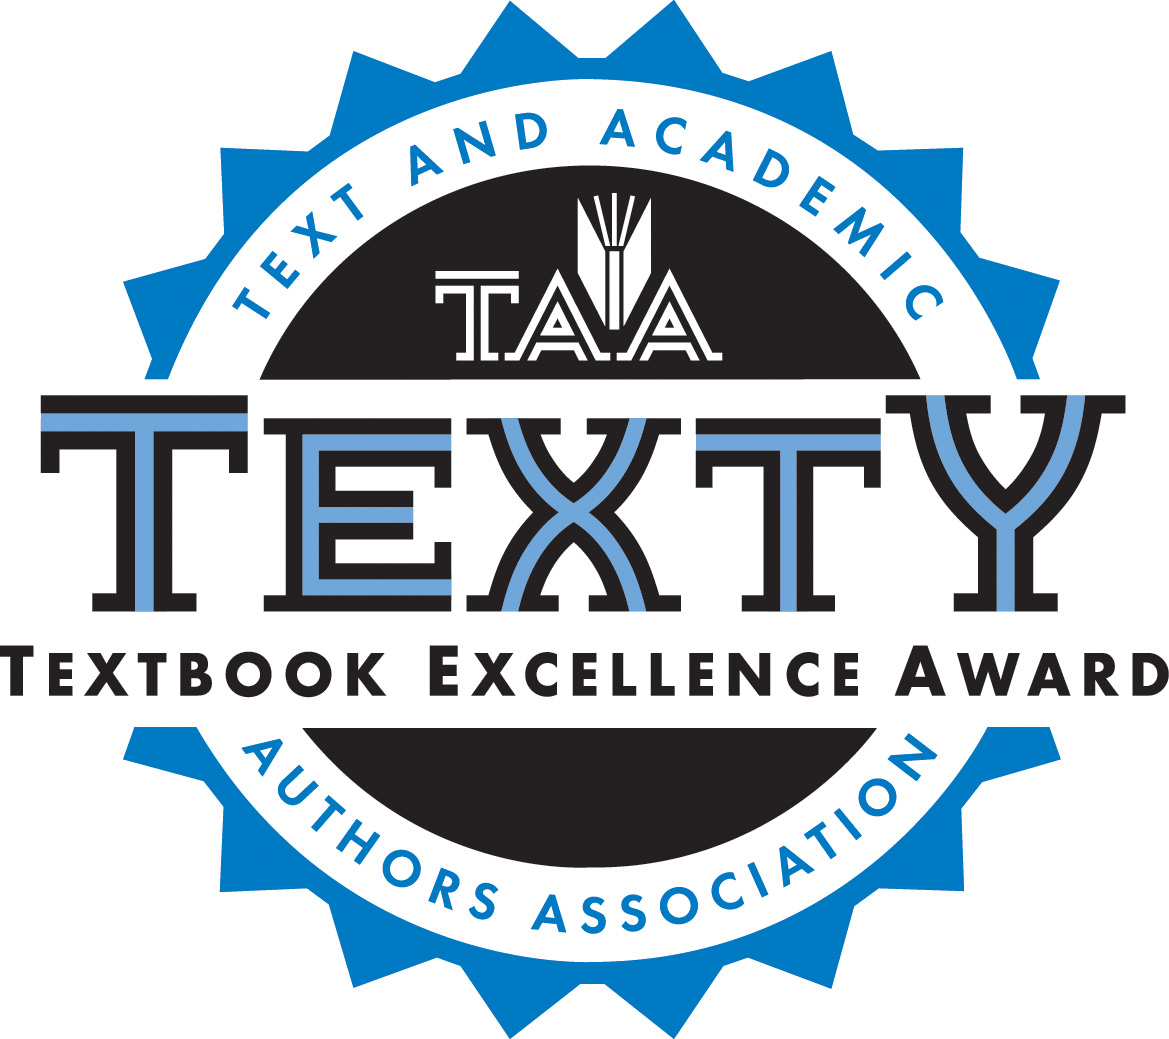 Texty Award for Textbook Excellence